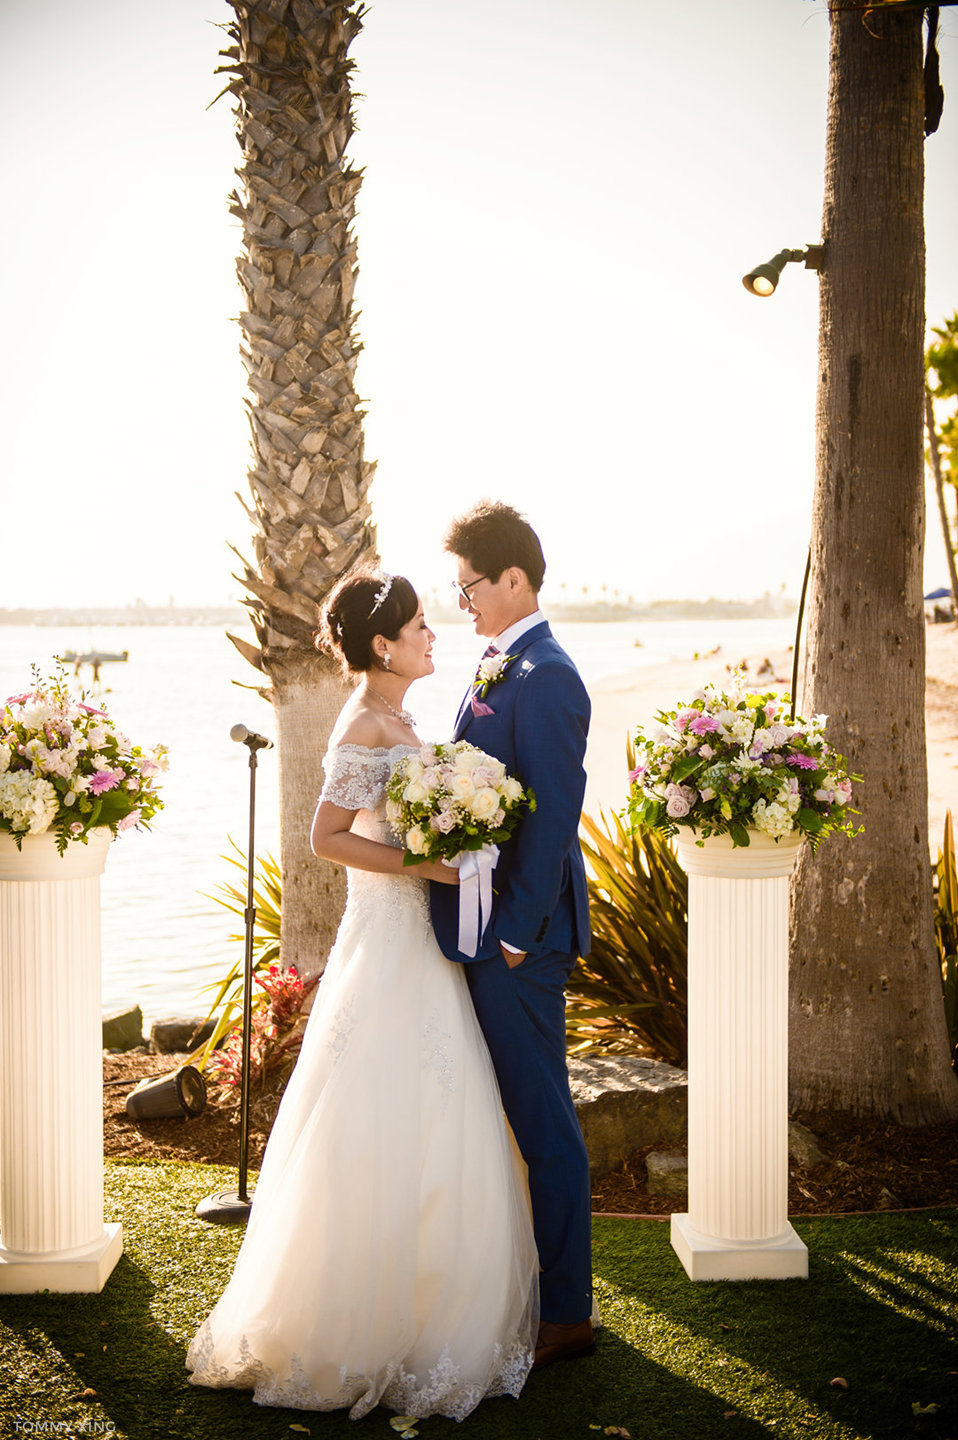 Paradise Point Resort Wedding Xiaolu & Bin San Diego 圣地亚哥婚礼摄影跟拍 Tommy Xing Photography 洛杉矶婚礼婚纱照摄影师 189.jpg